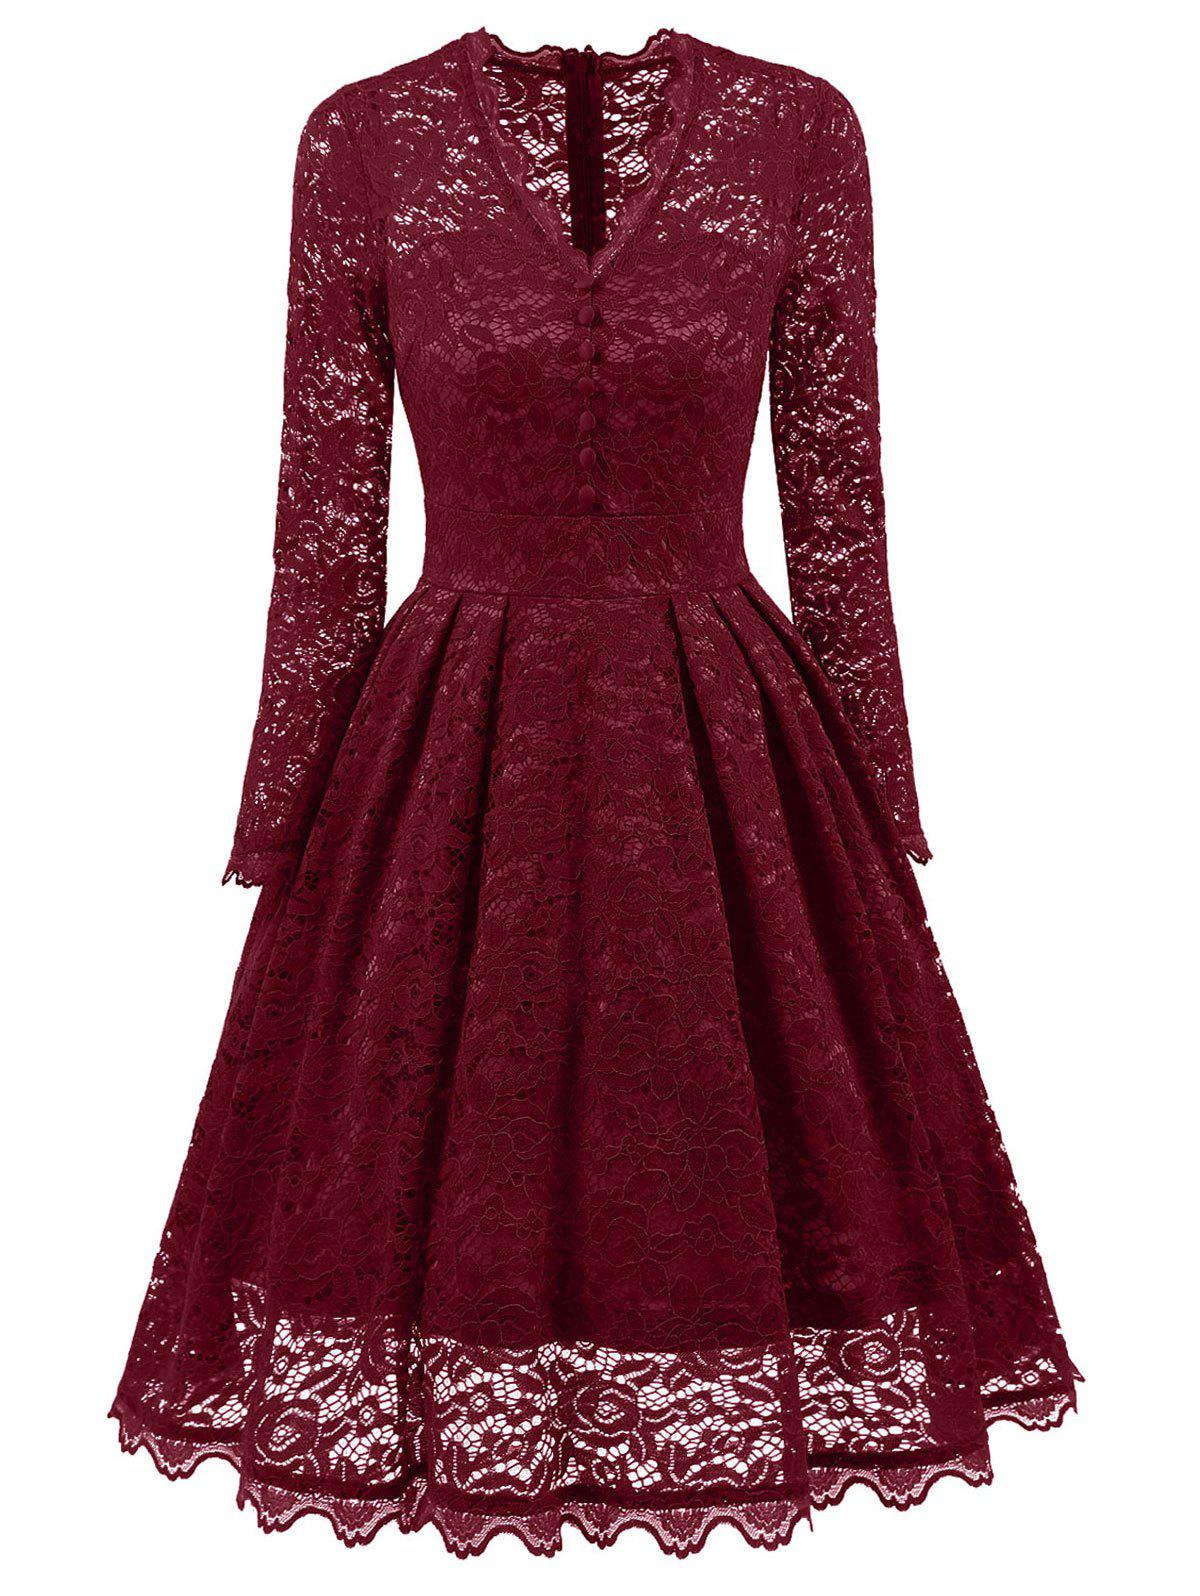 Party Vintage A Line Lace Dress - WINE RED S